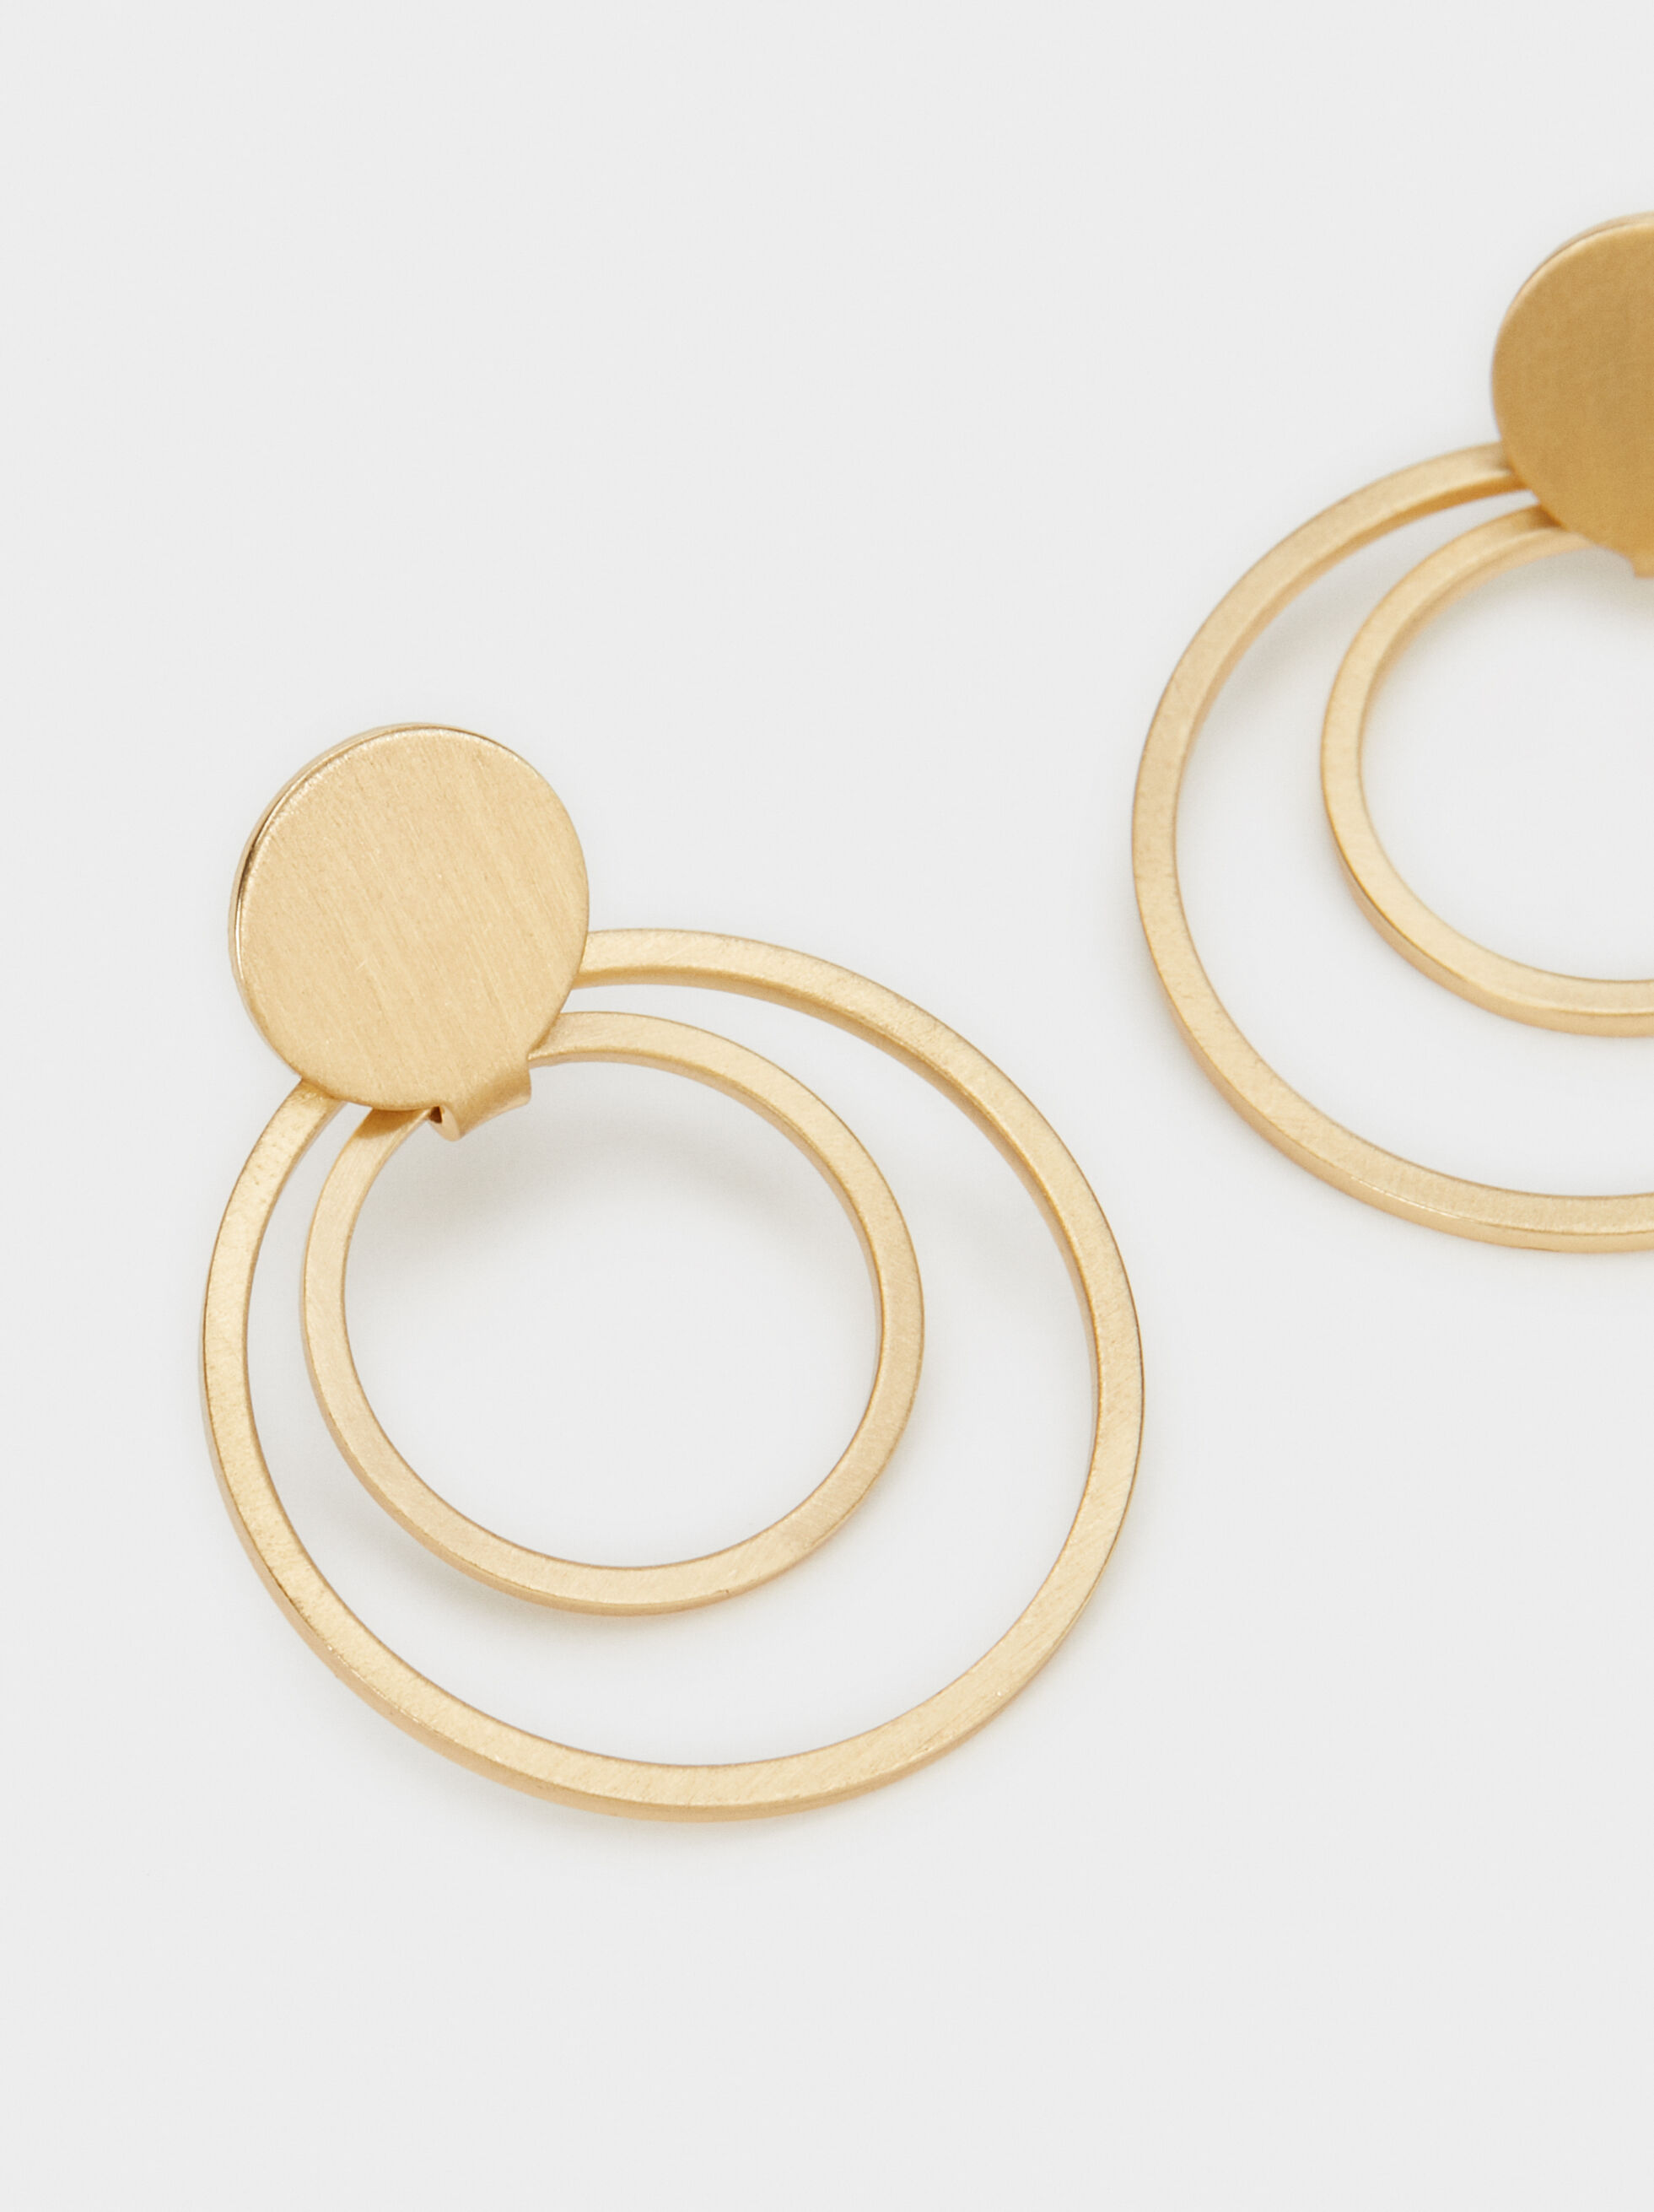 Medium Circle Earrings, Golden, hi-res